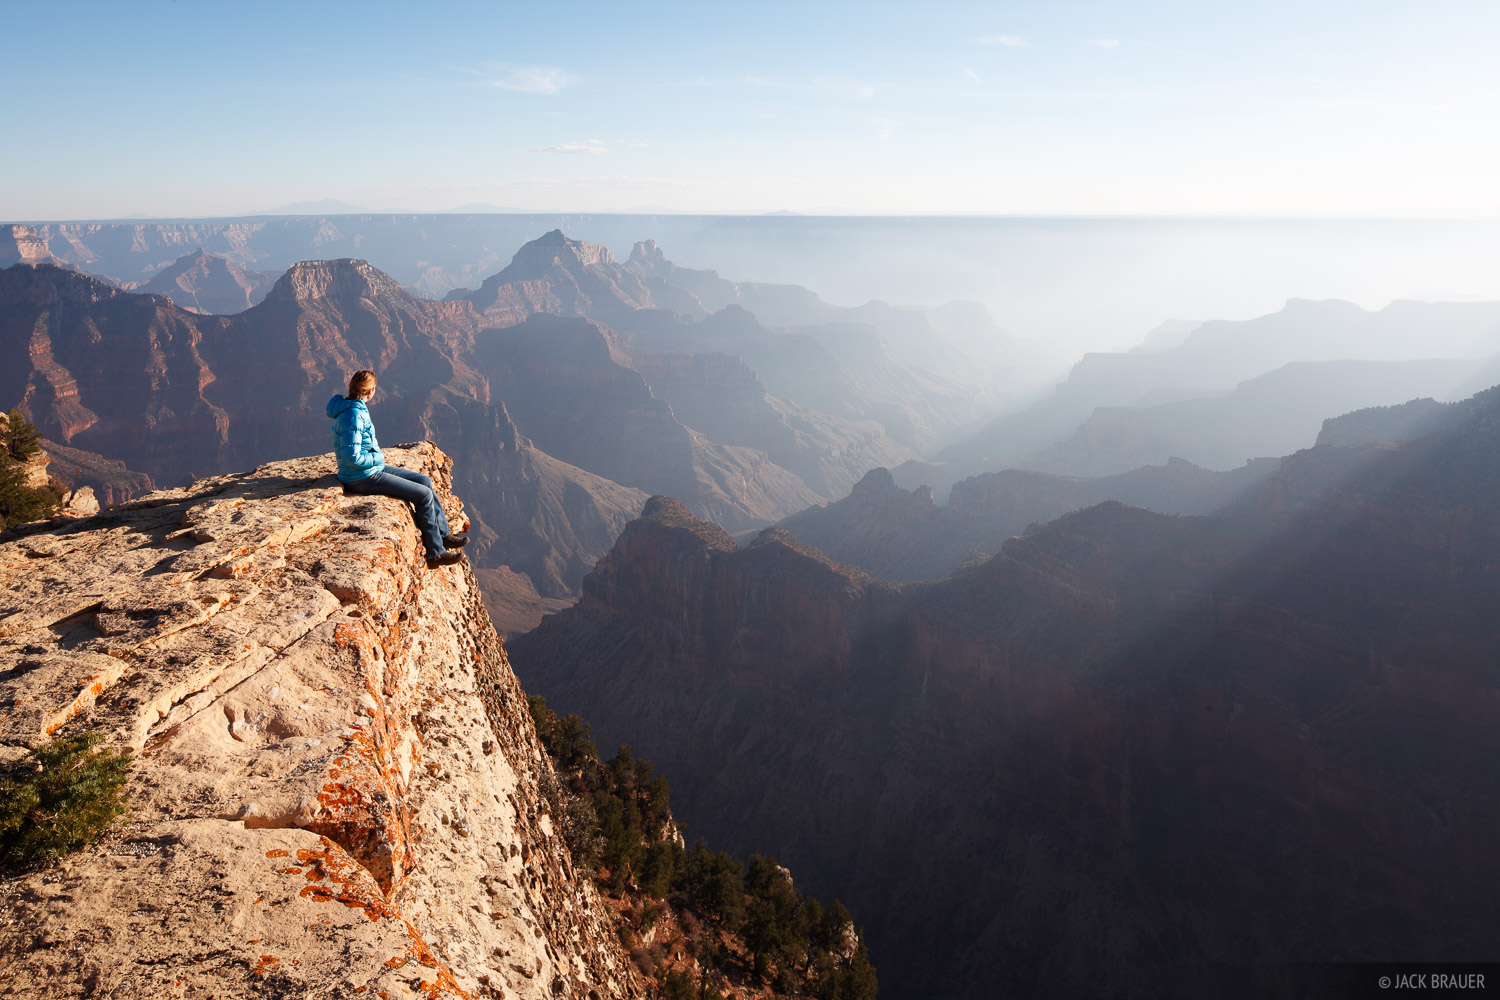 Sitting on the edge of the Grand Canyon, near the Bright Angel Trail.